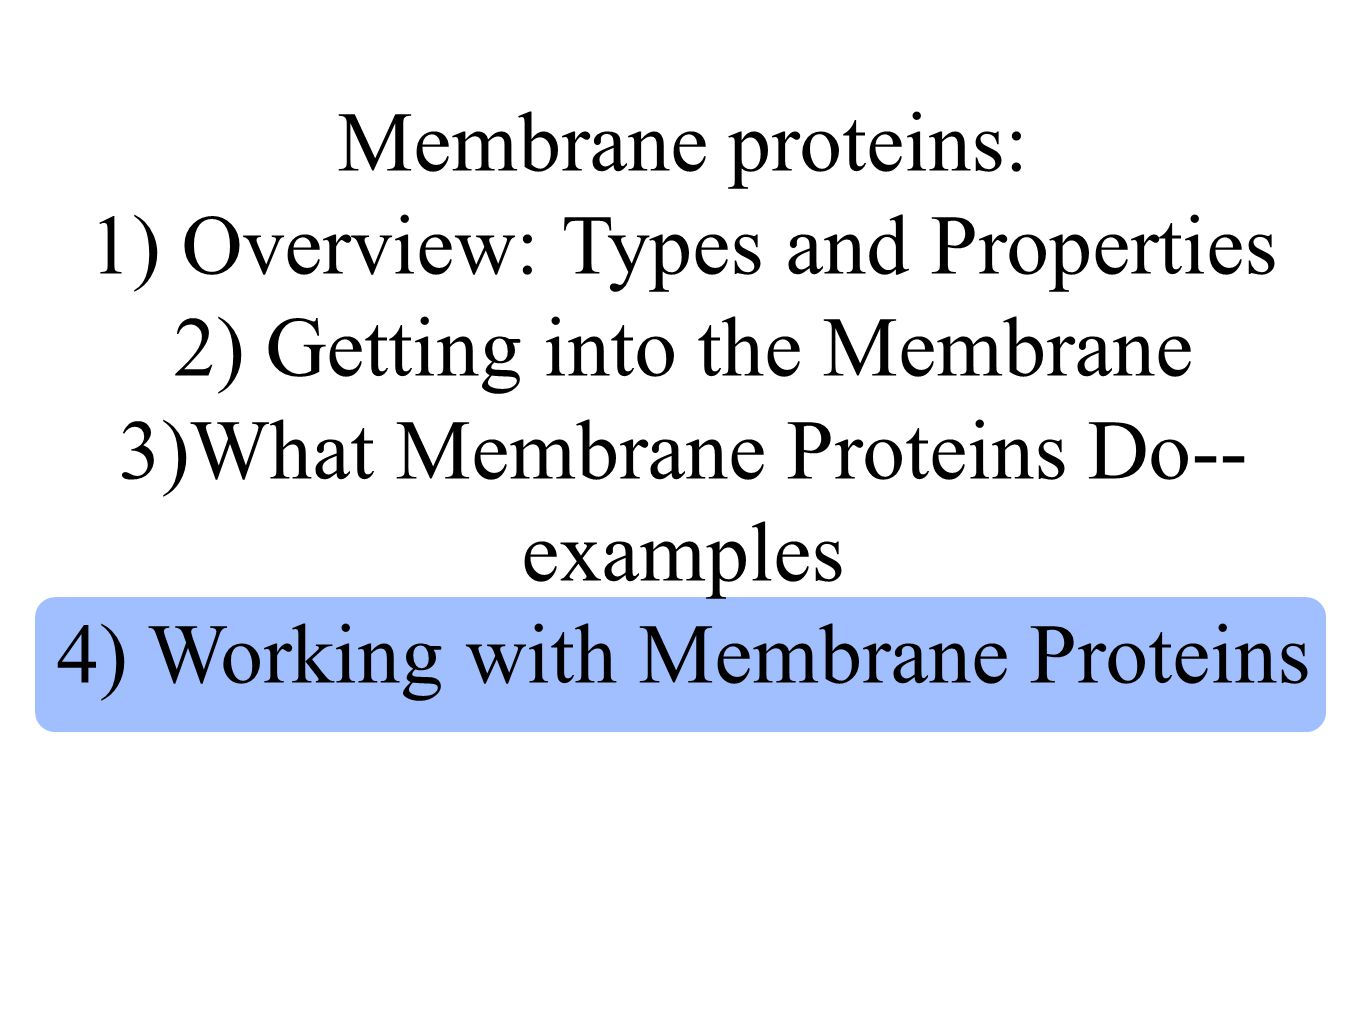 Membrane proteins: 1) Overview: Types and Properties 2) Getting into the Membrane 3)What Membrane Proteins Do-- examples 4) Working with Membrane Proteins